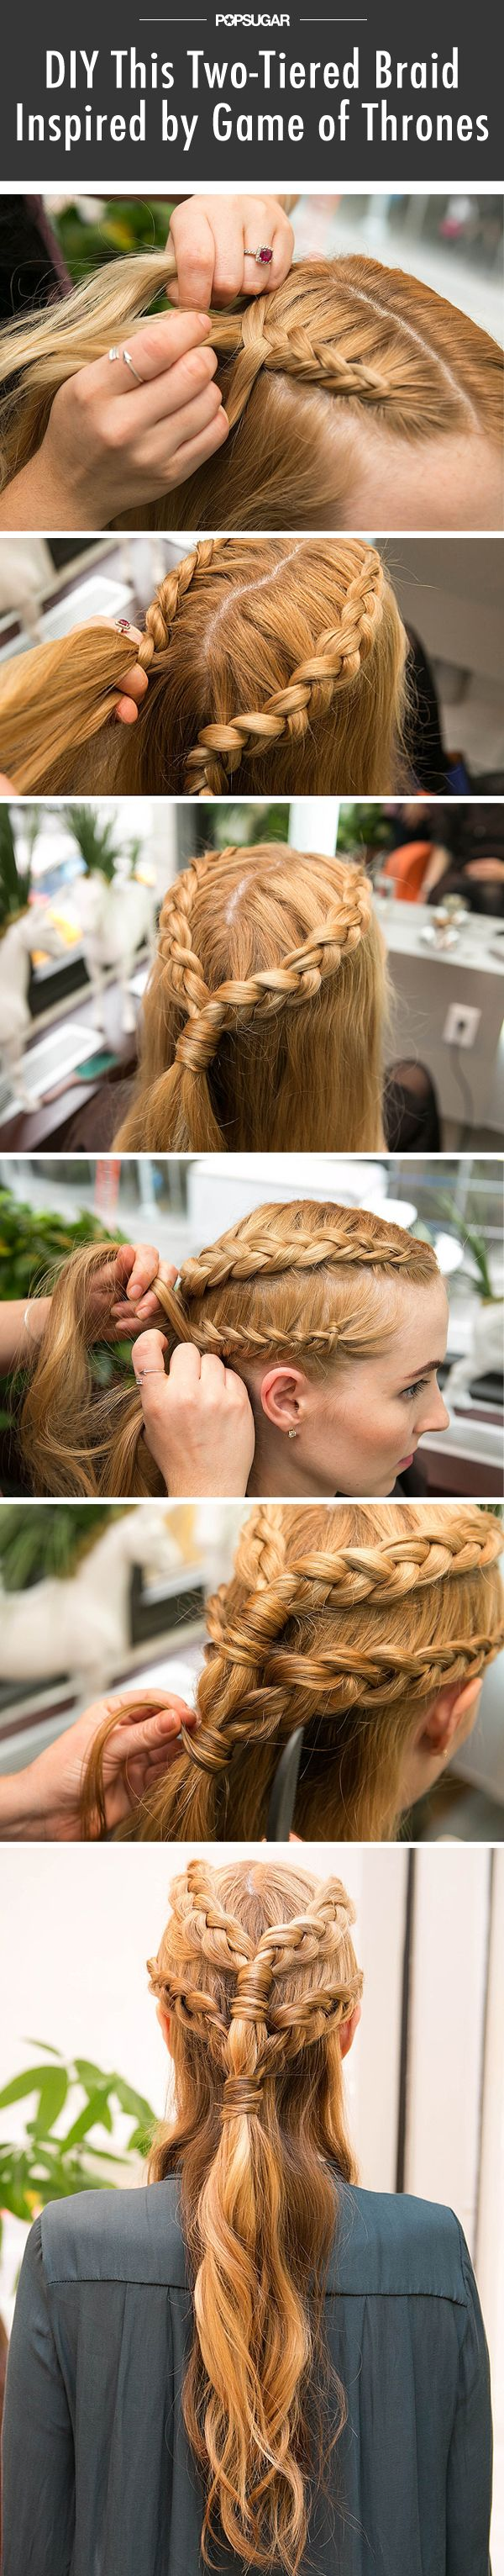 Enjoyable 1000 Ideas About Braid Game On Pinterest Braids French Braids Short Hairstyles For Black Women Fulllsitofus